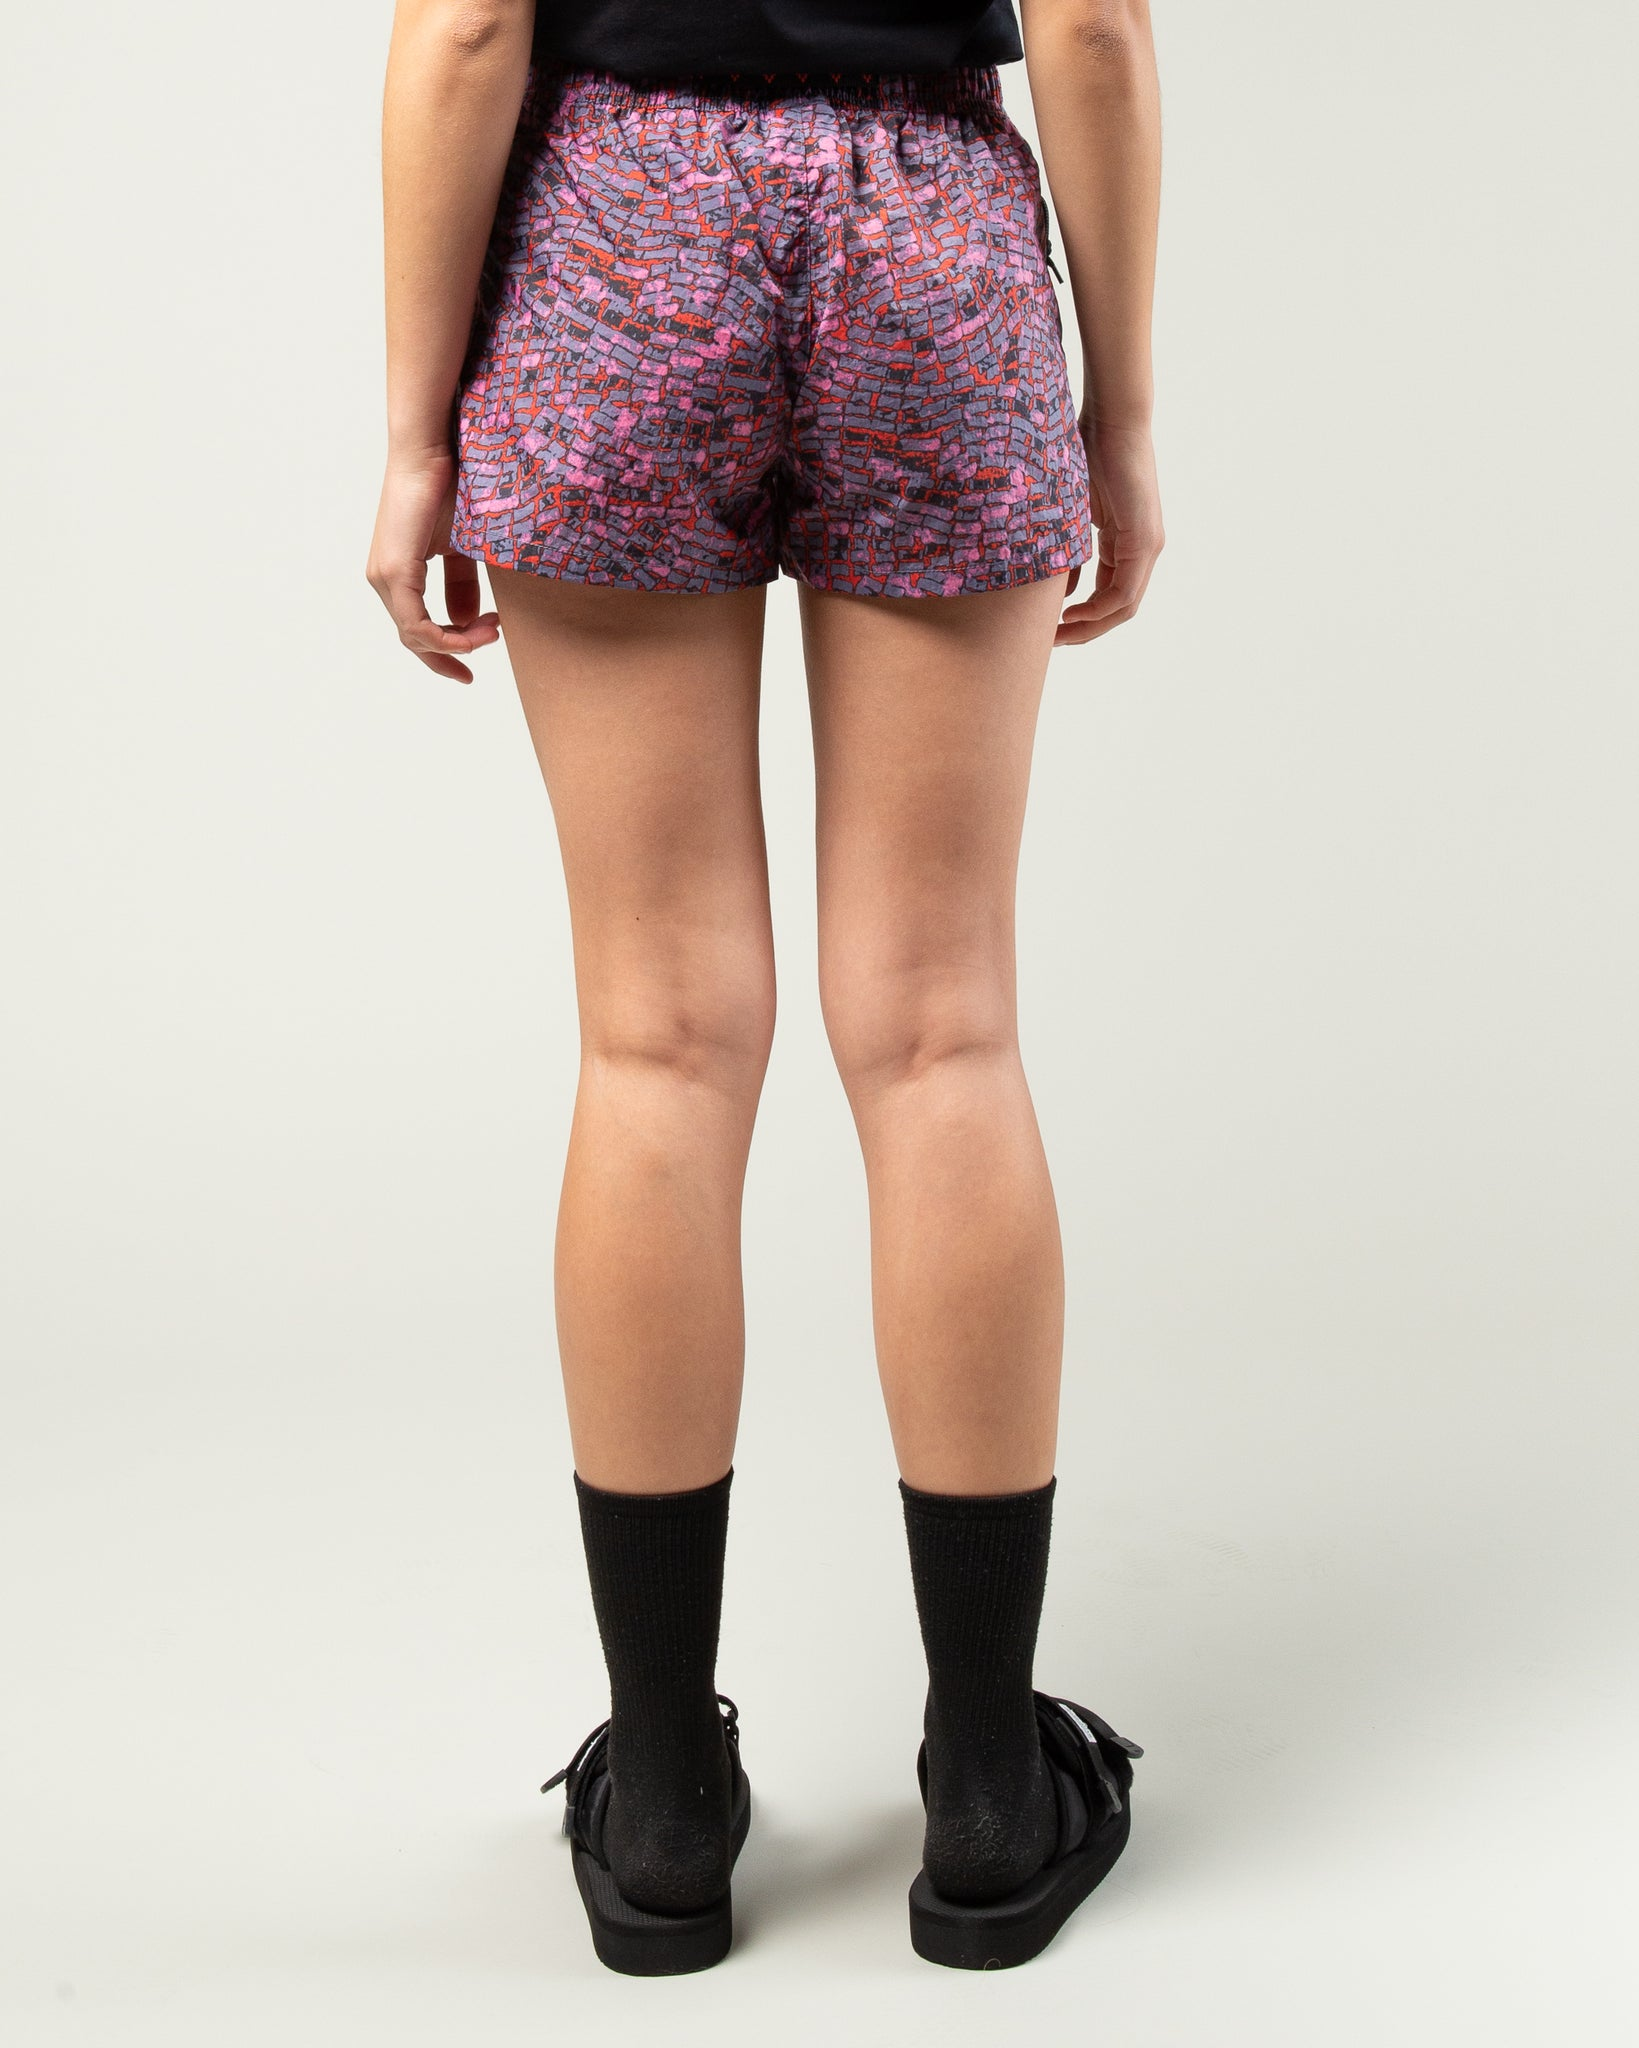 WMNS NRG ACG Shorts Black